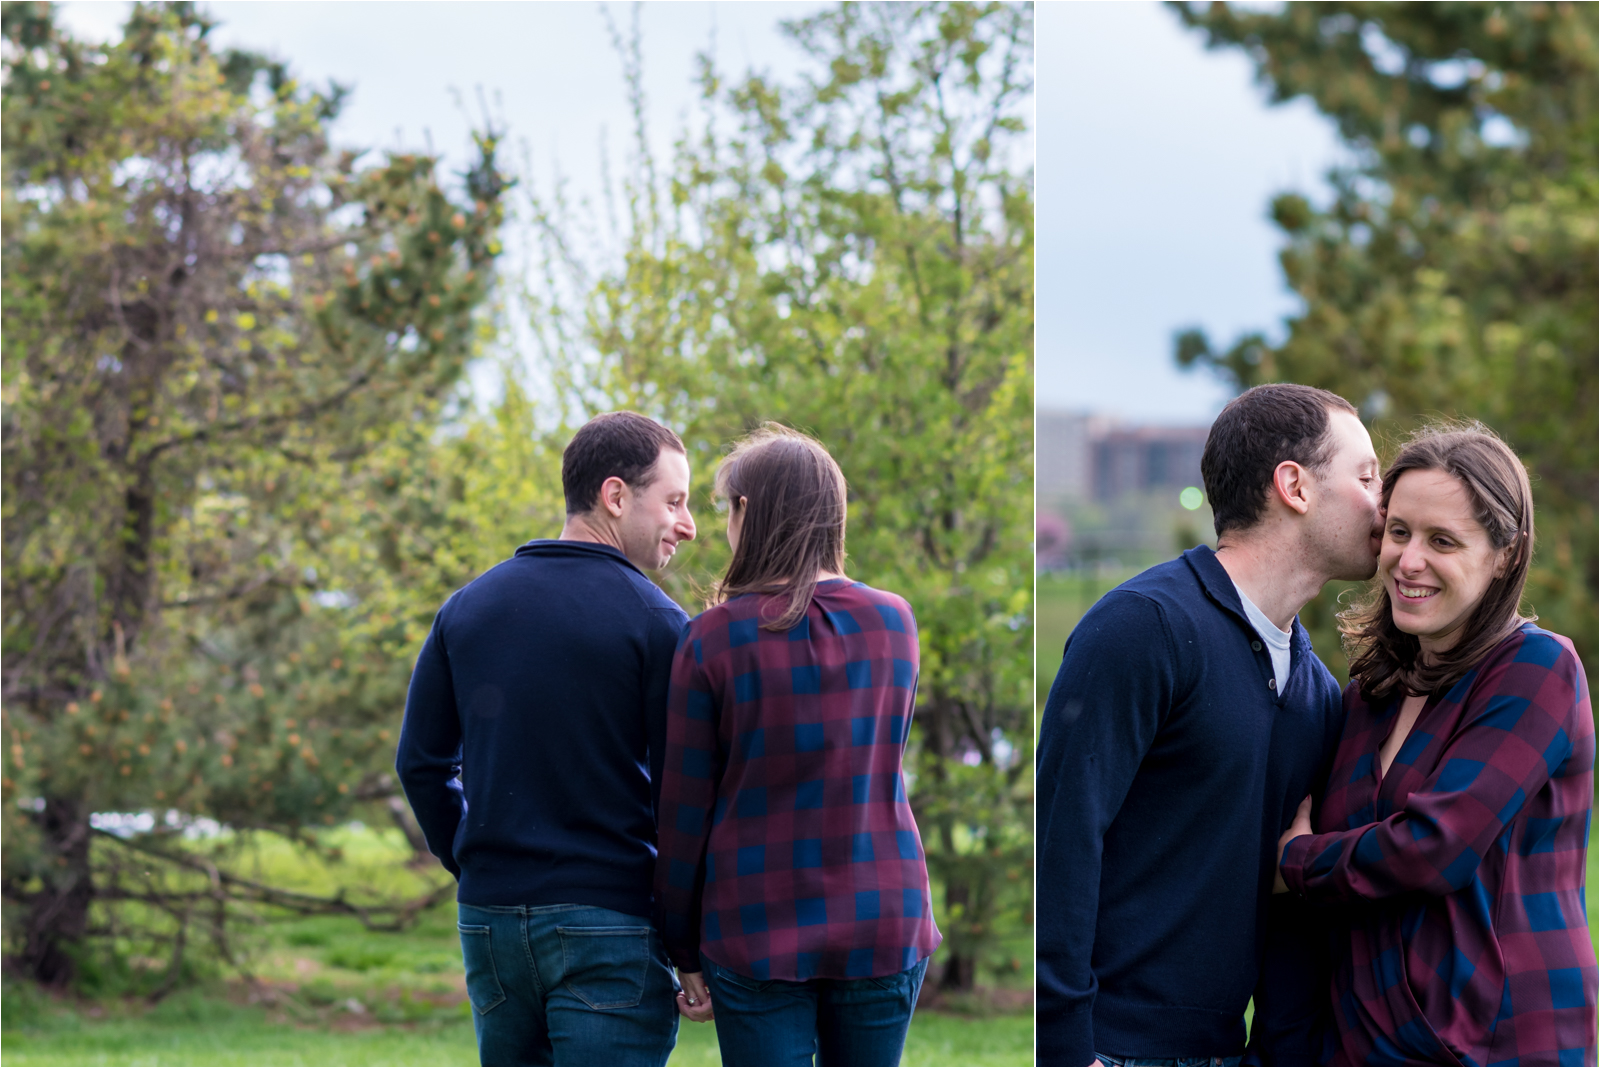 engagement-photography-session-focus-on-joy-photography-jessica-capozzola-gravelly-point-park-gravelly point-washington-dc-maroon-checkered-shirt-navy-sweater-husband-wife-fiance-engaged-couple